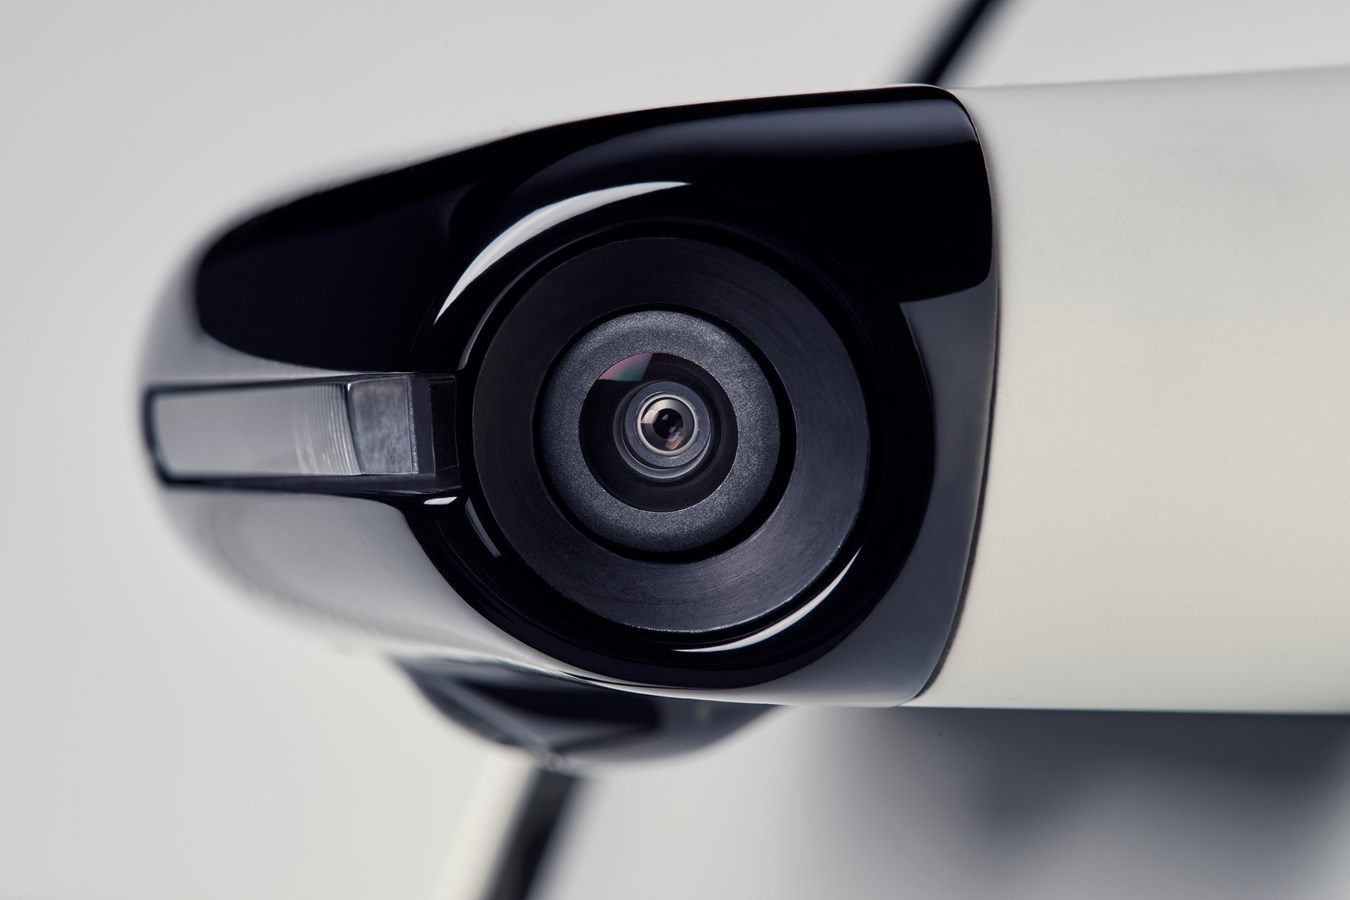 HONDA CONFIRM SIDE CAMERA MIRROR SYSTEM AS STANDARD FOR HONDA E